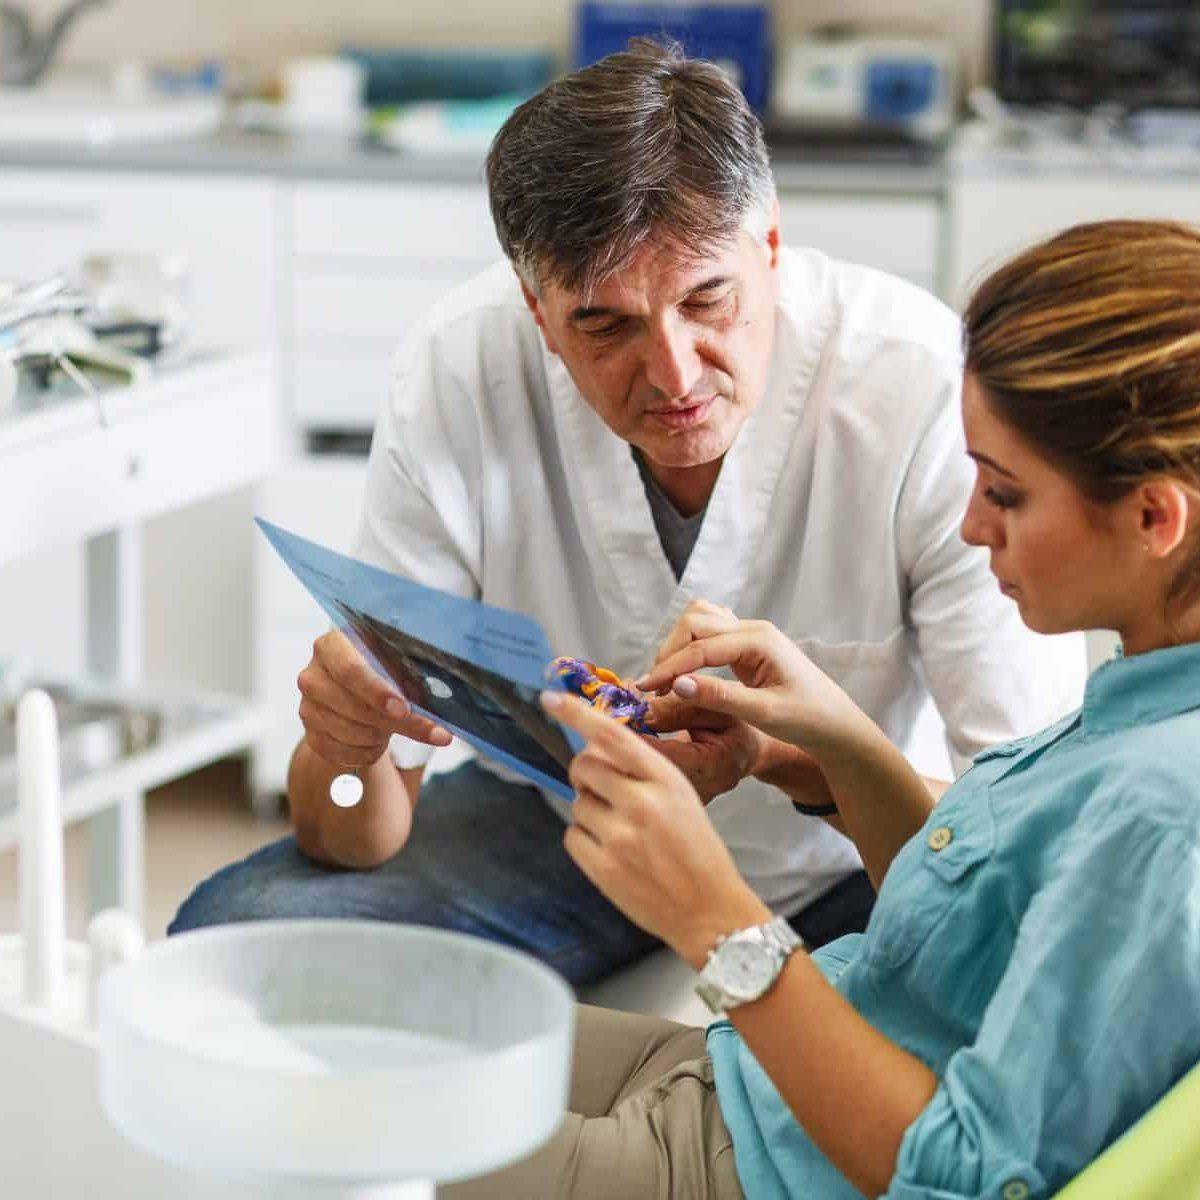 How Is A Tooth Extraction Done? The Dentist Uses A Forceps